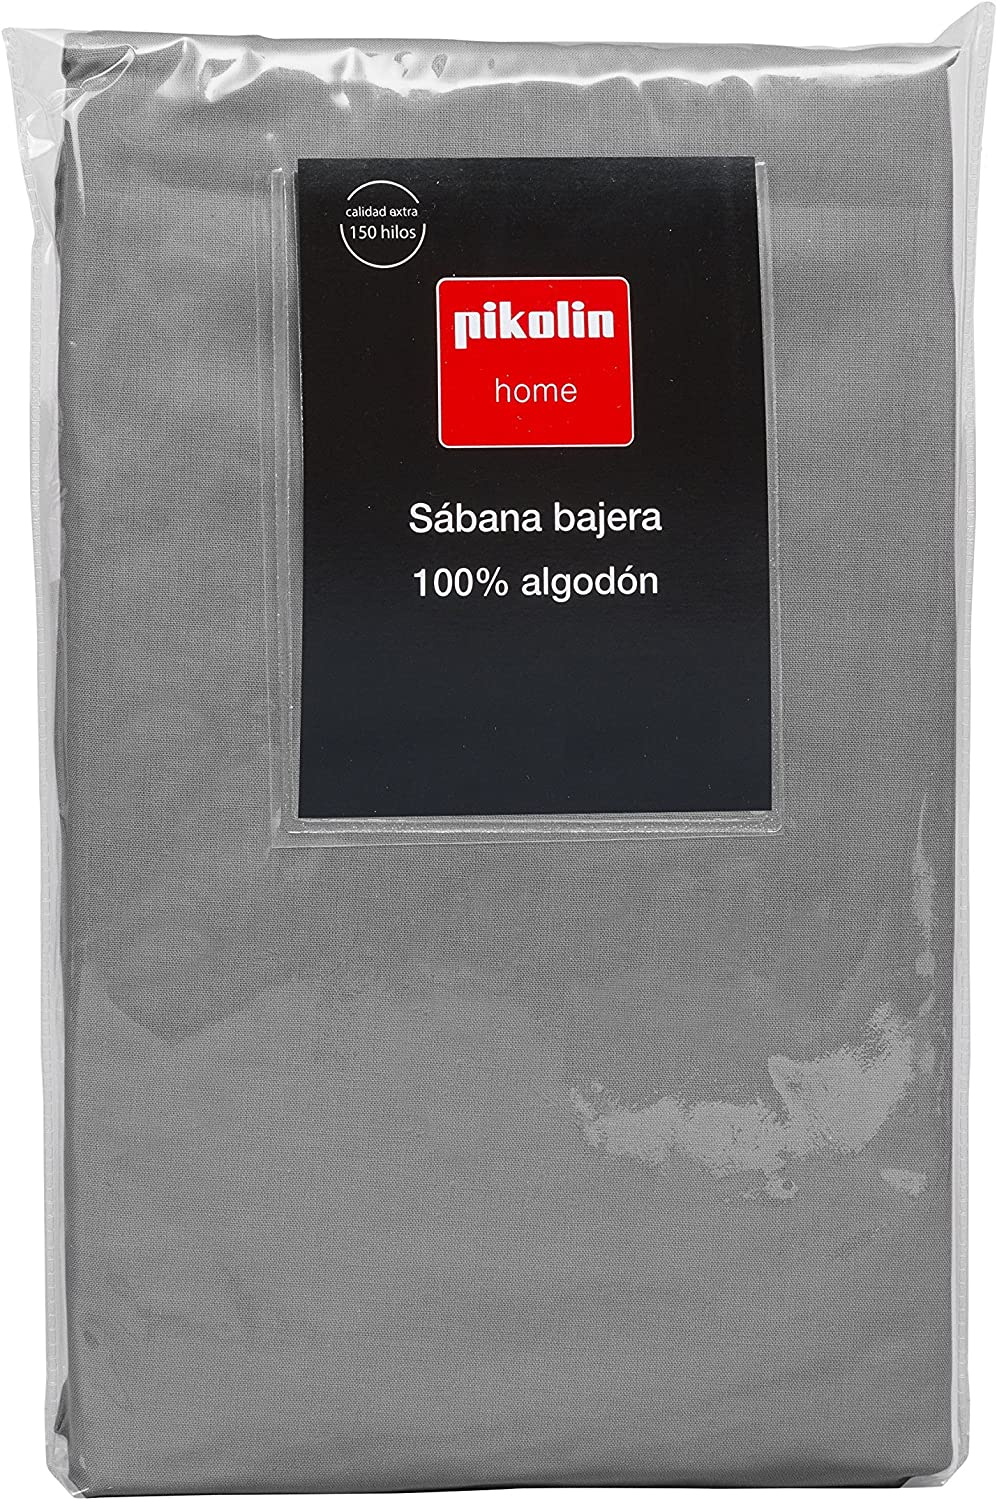 Pikolin Home  Adjustable Fitted Sheet, 100% Cotton, 135 x 200 cm, Bed 135 140, Grey Colour